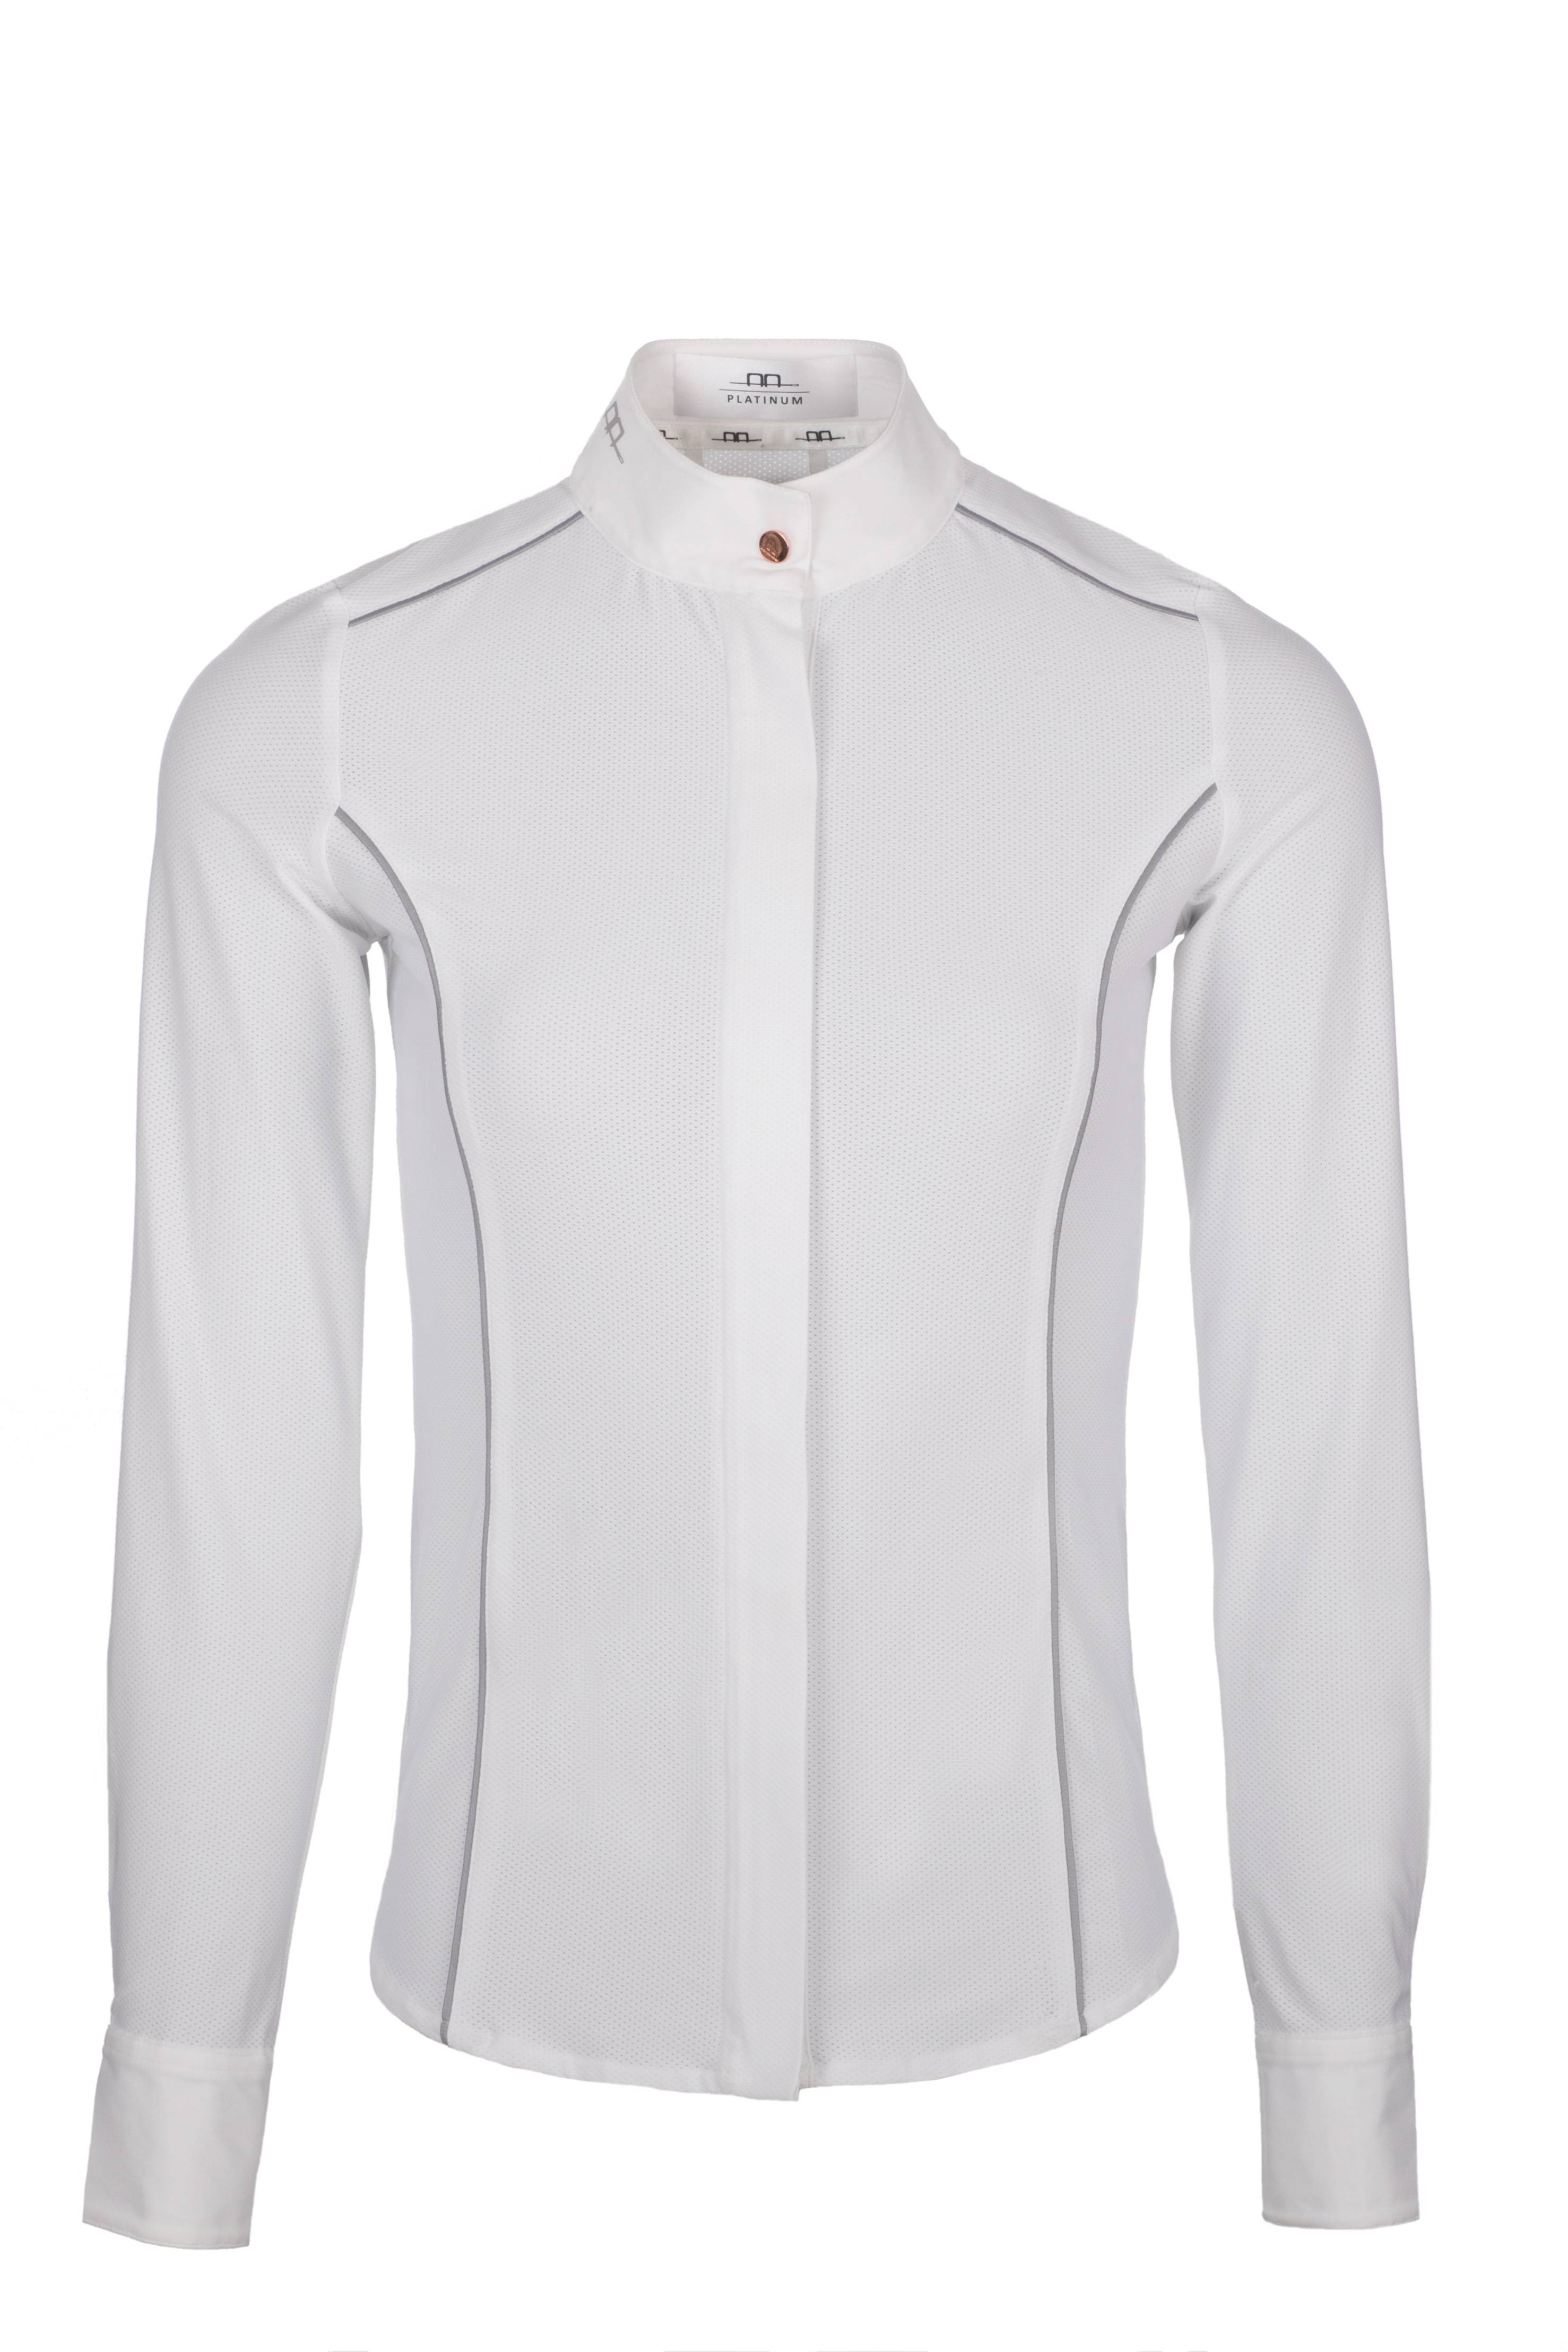 Alessandro Albanese Lea Competition Shirt Ladies